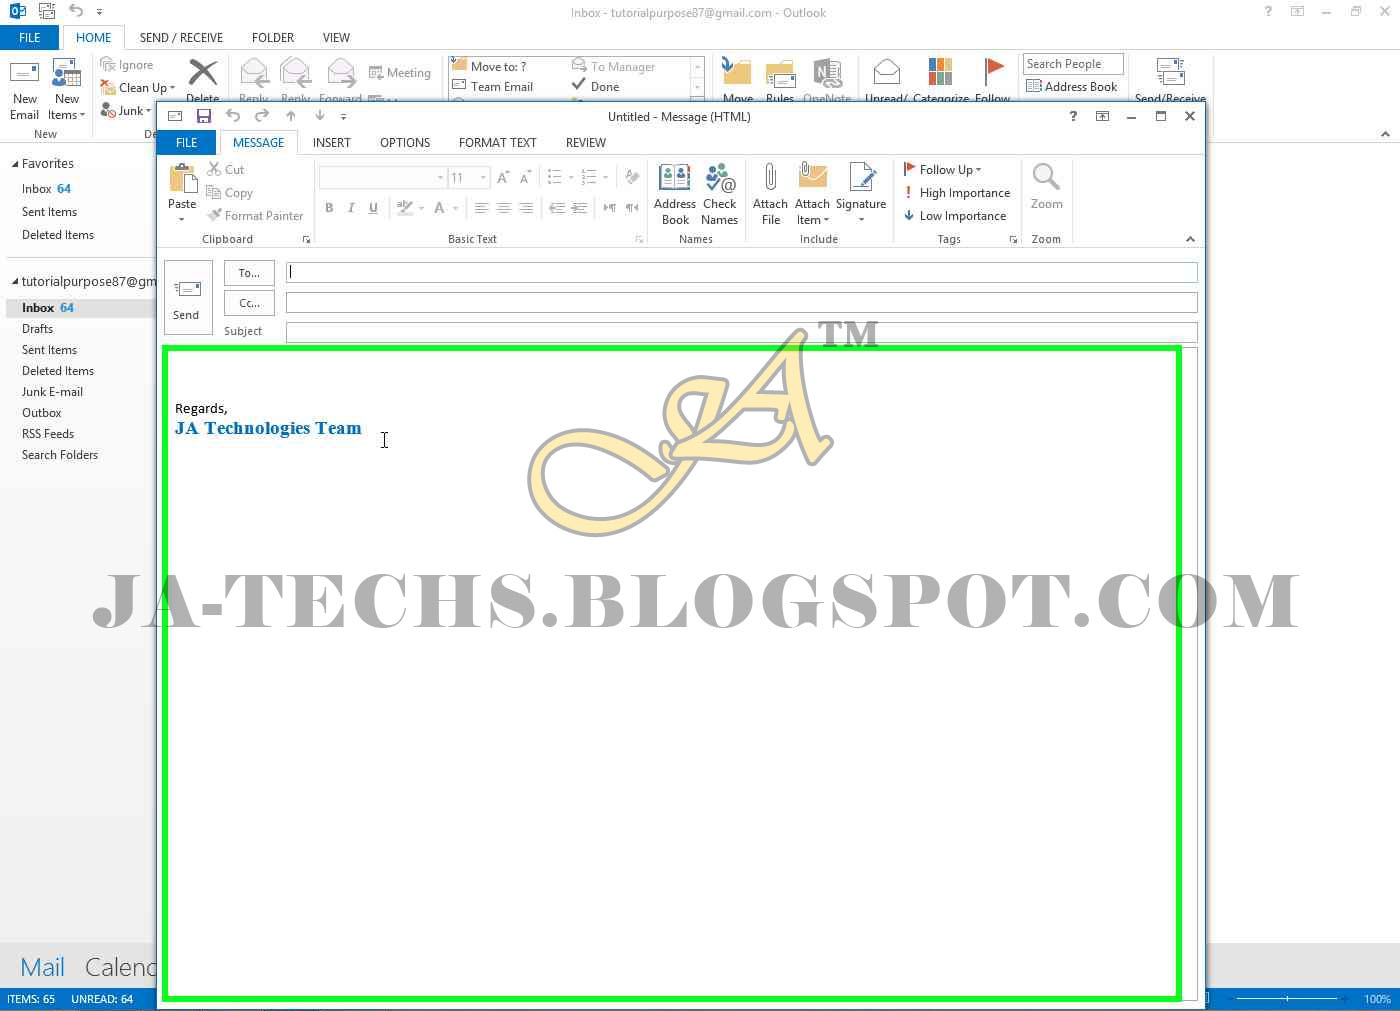 how to create signature in outlook 2013